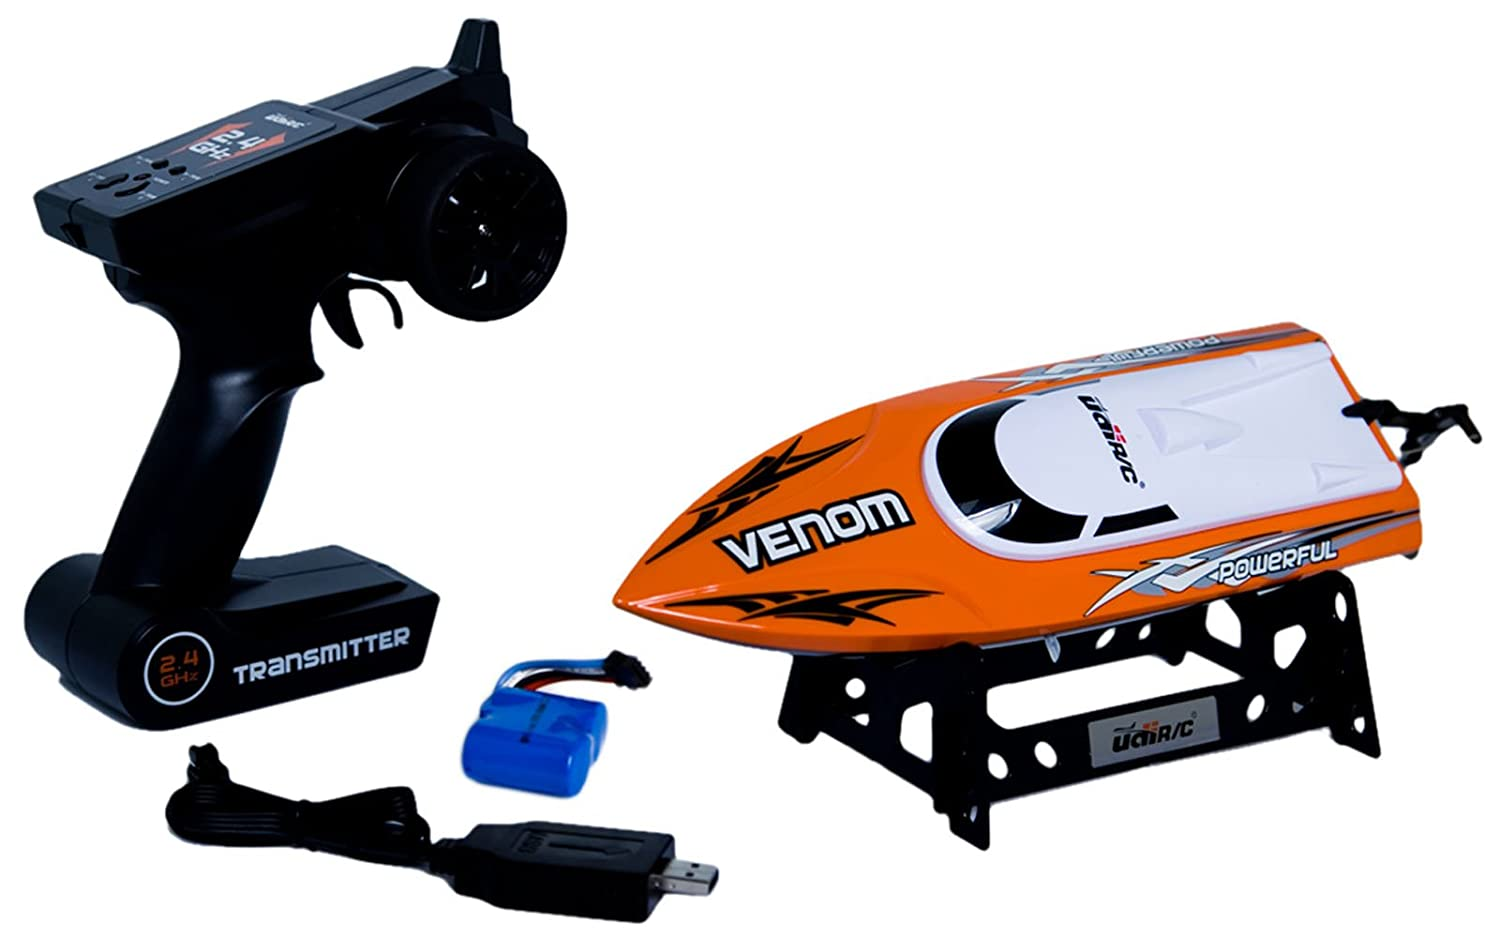 Udirc Venom 2.4GHz High Speed Remote Control Electric Boat (Orange)